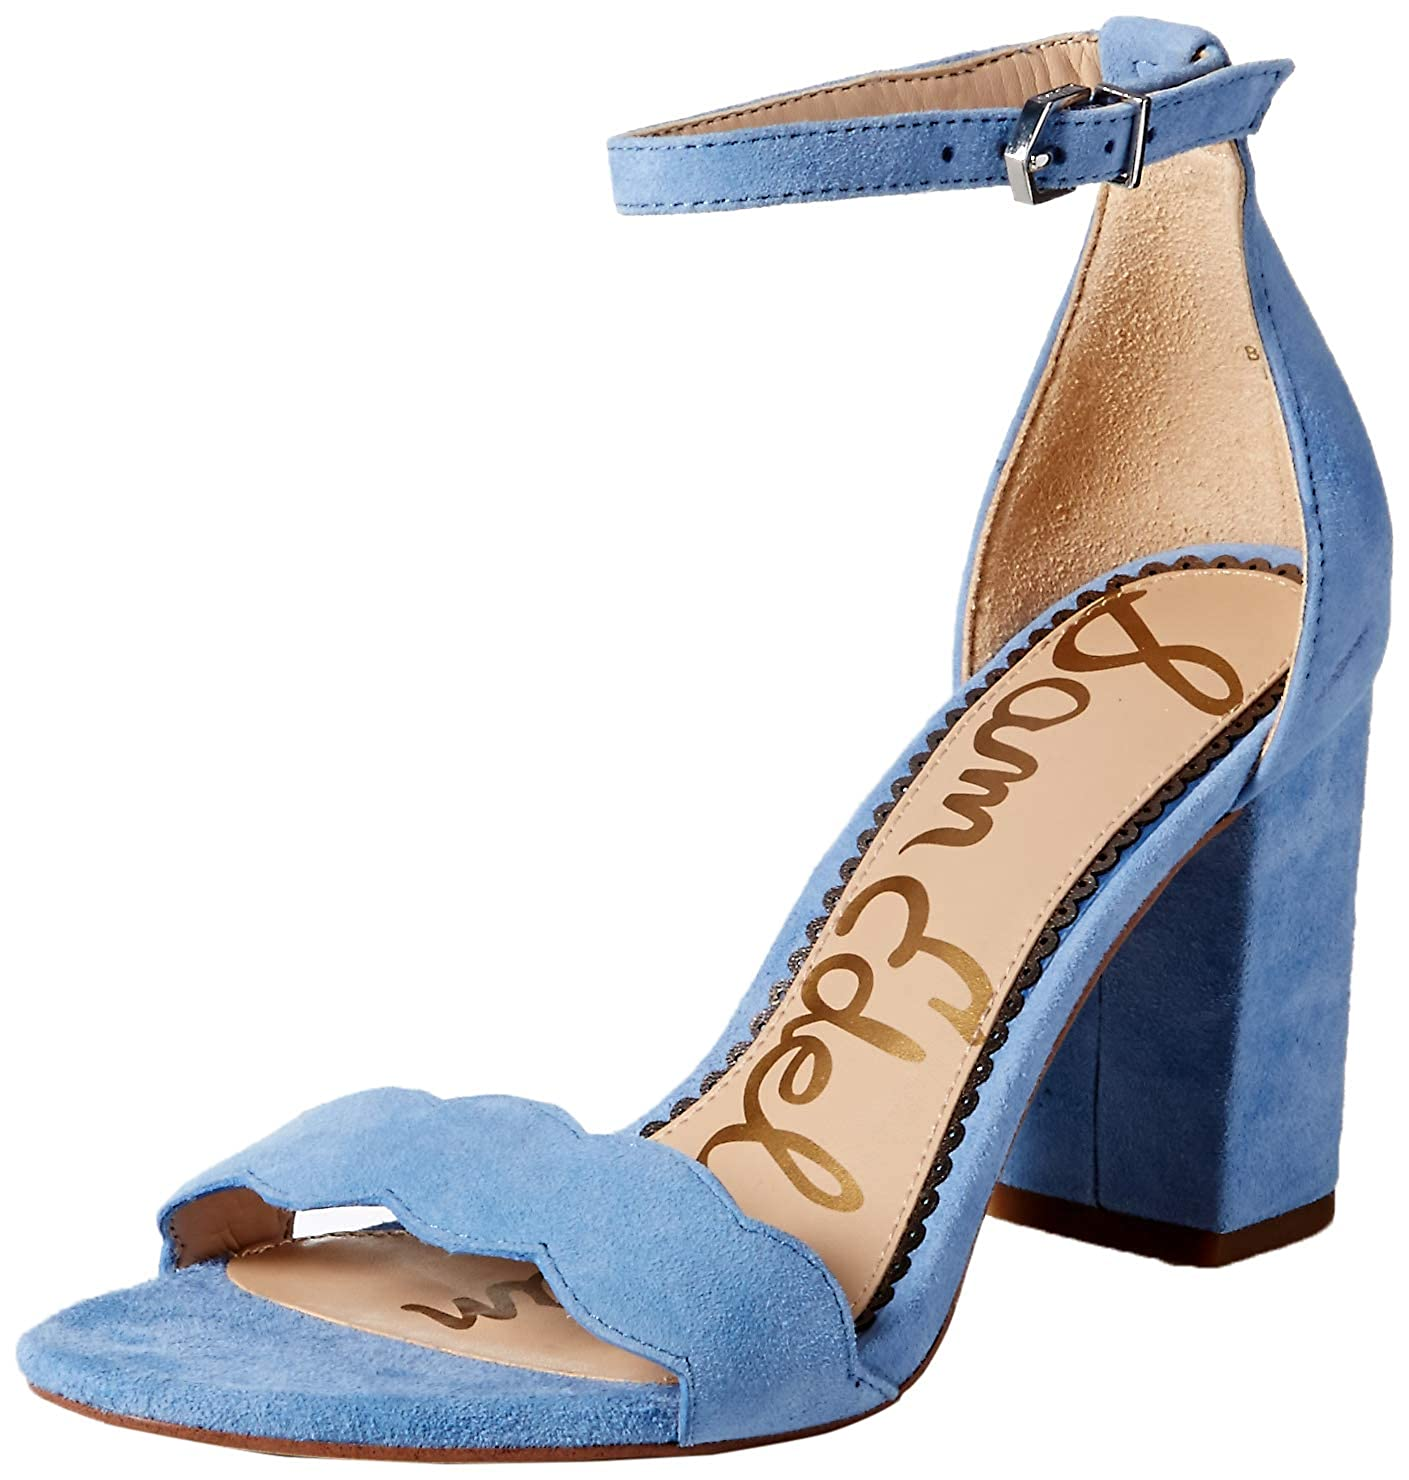 Cornflower bluee Suede Sam Edelman Women's Odila Fashion Sandals